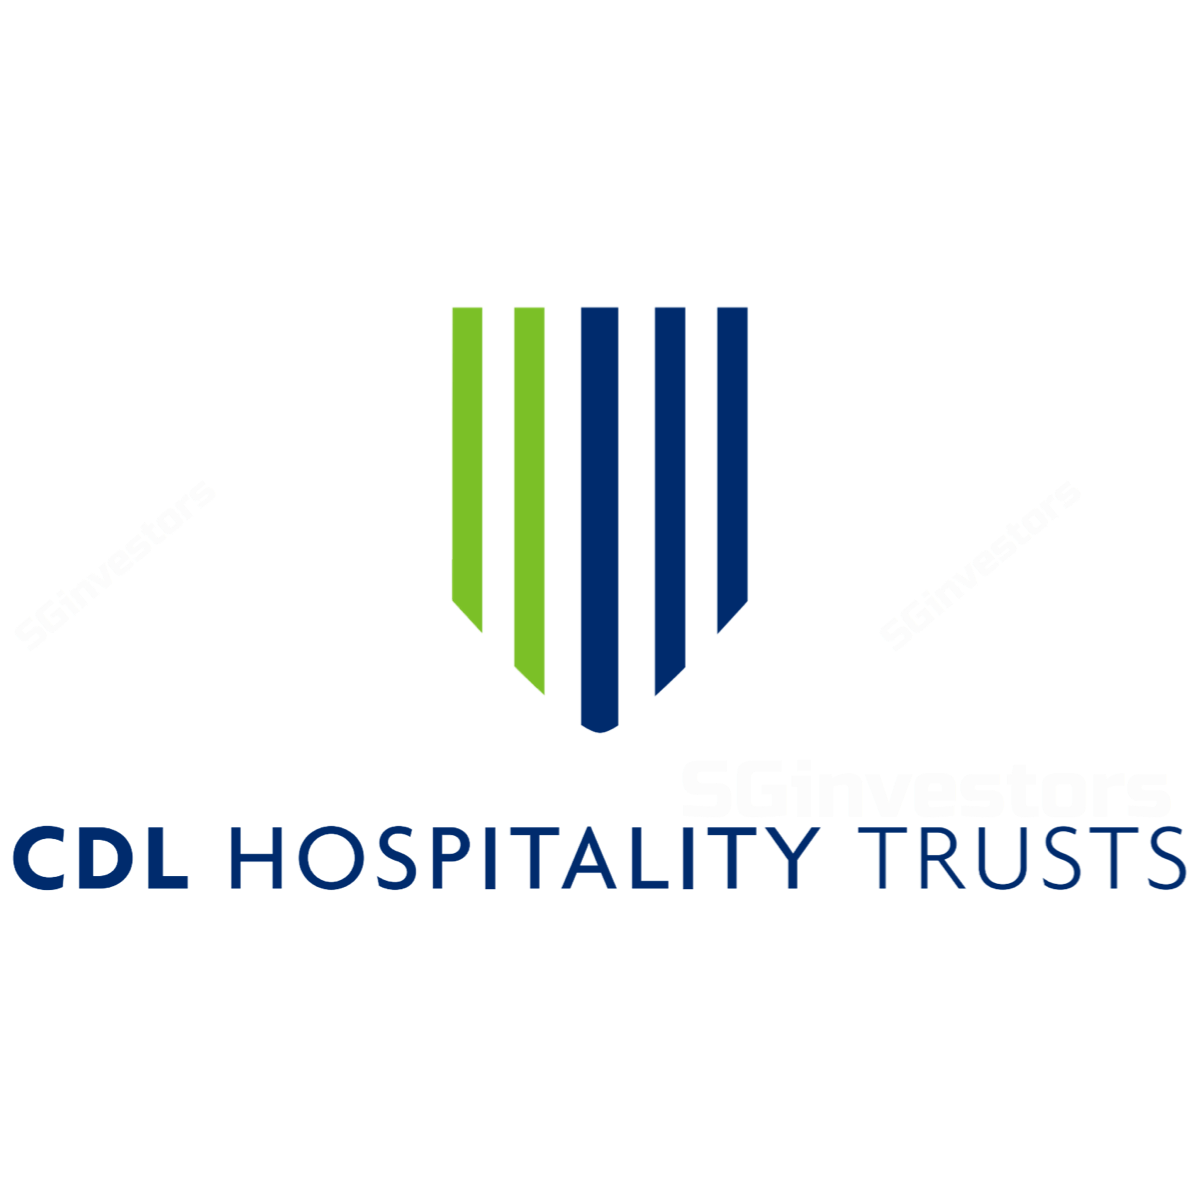 CDL Hospitality Trusts - RHB Invest 2017-06-29: Expanding Its Presence In Europe